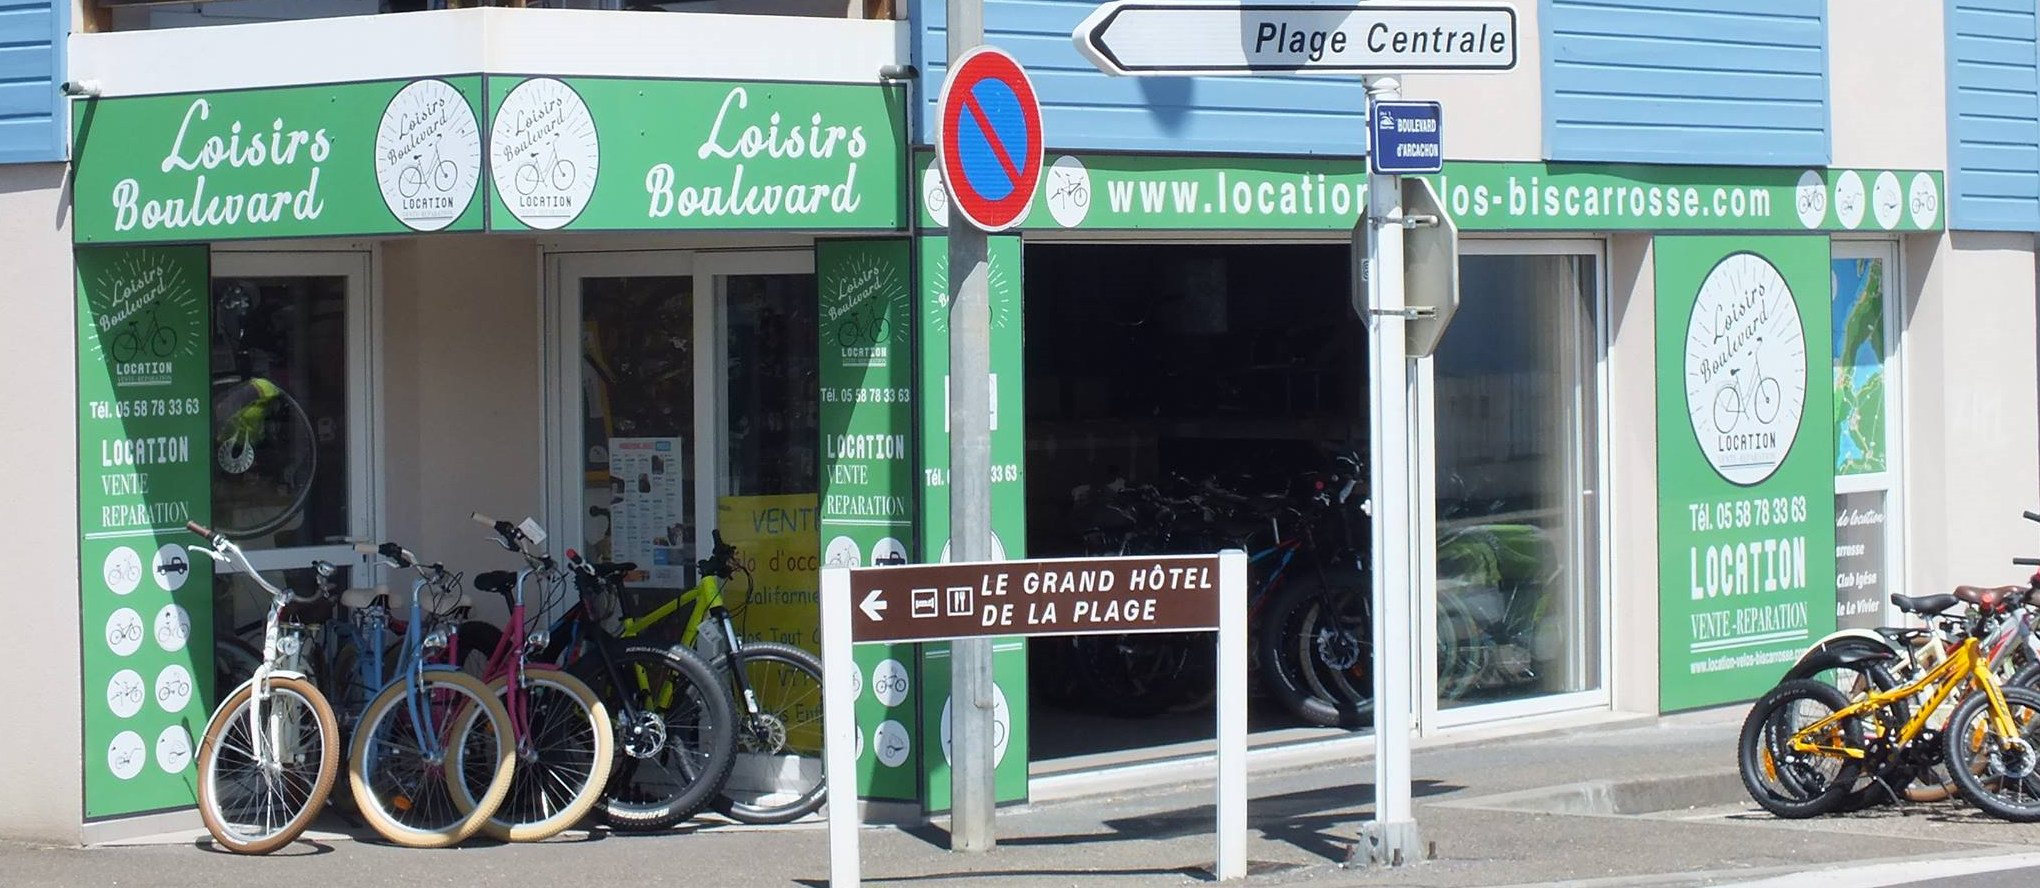 Cycle rental in Biscarrosse Plage